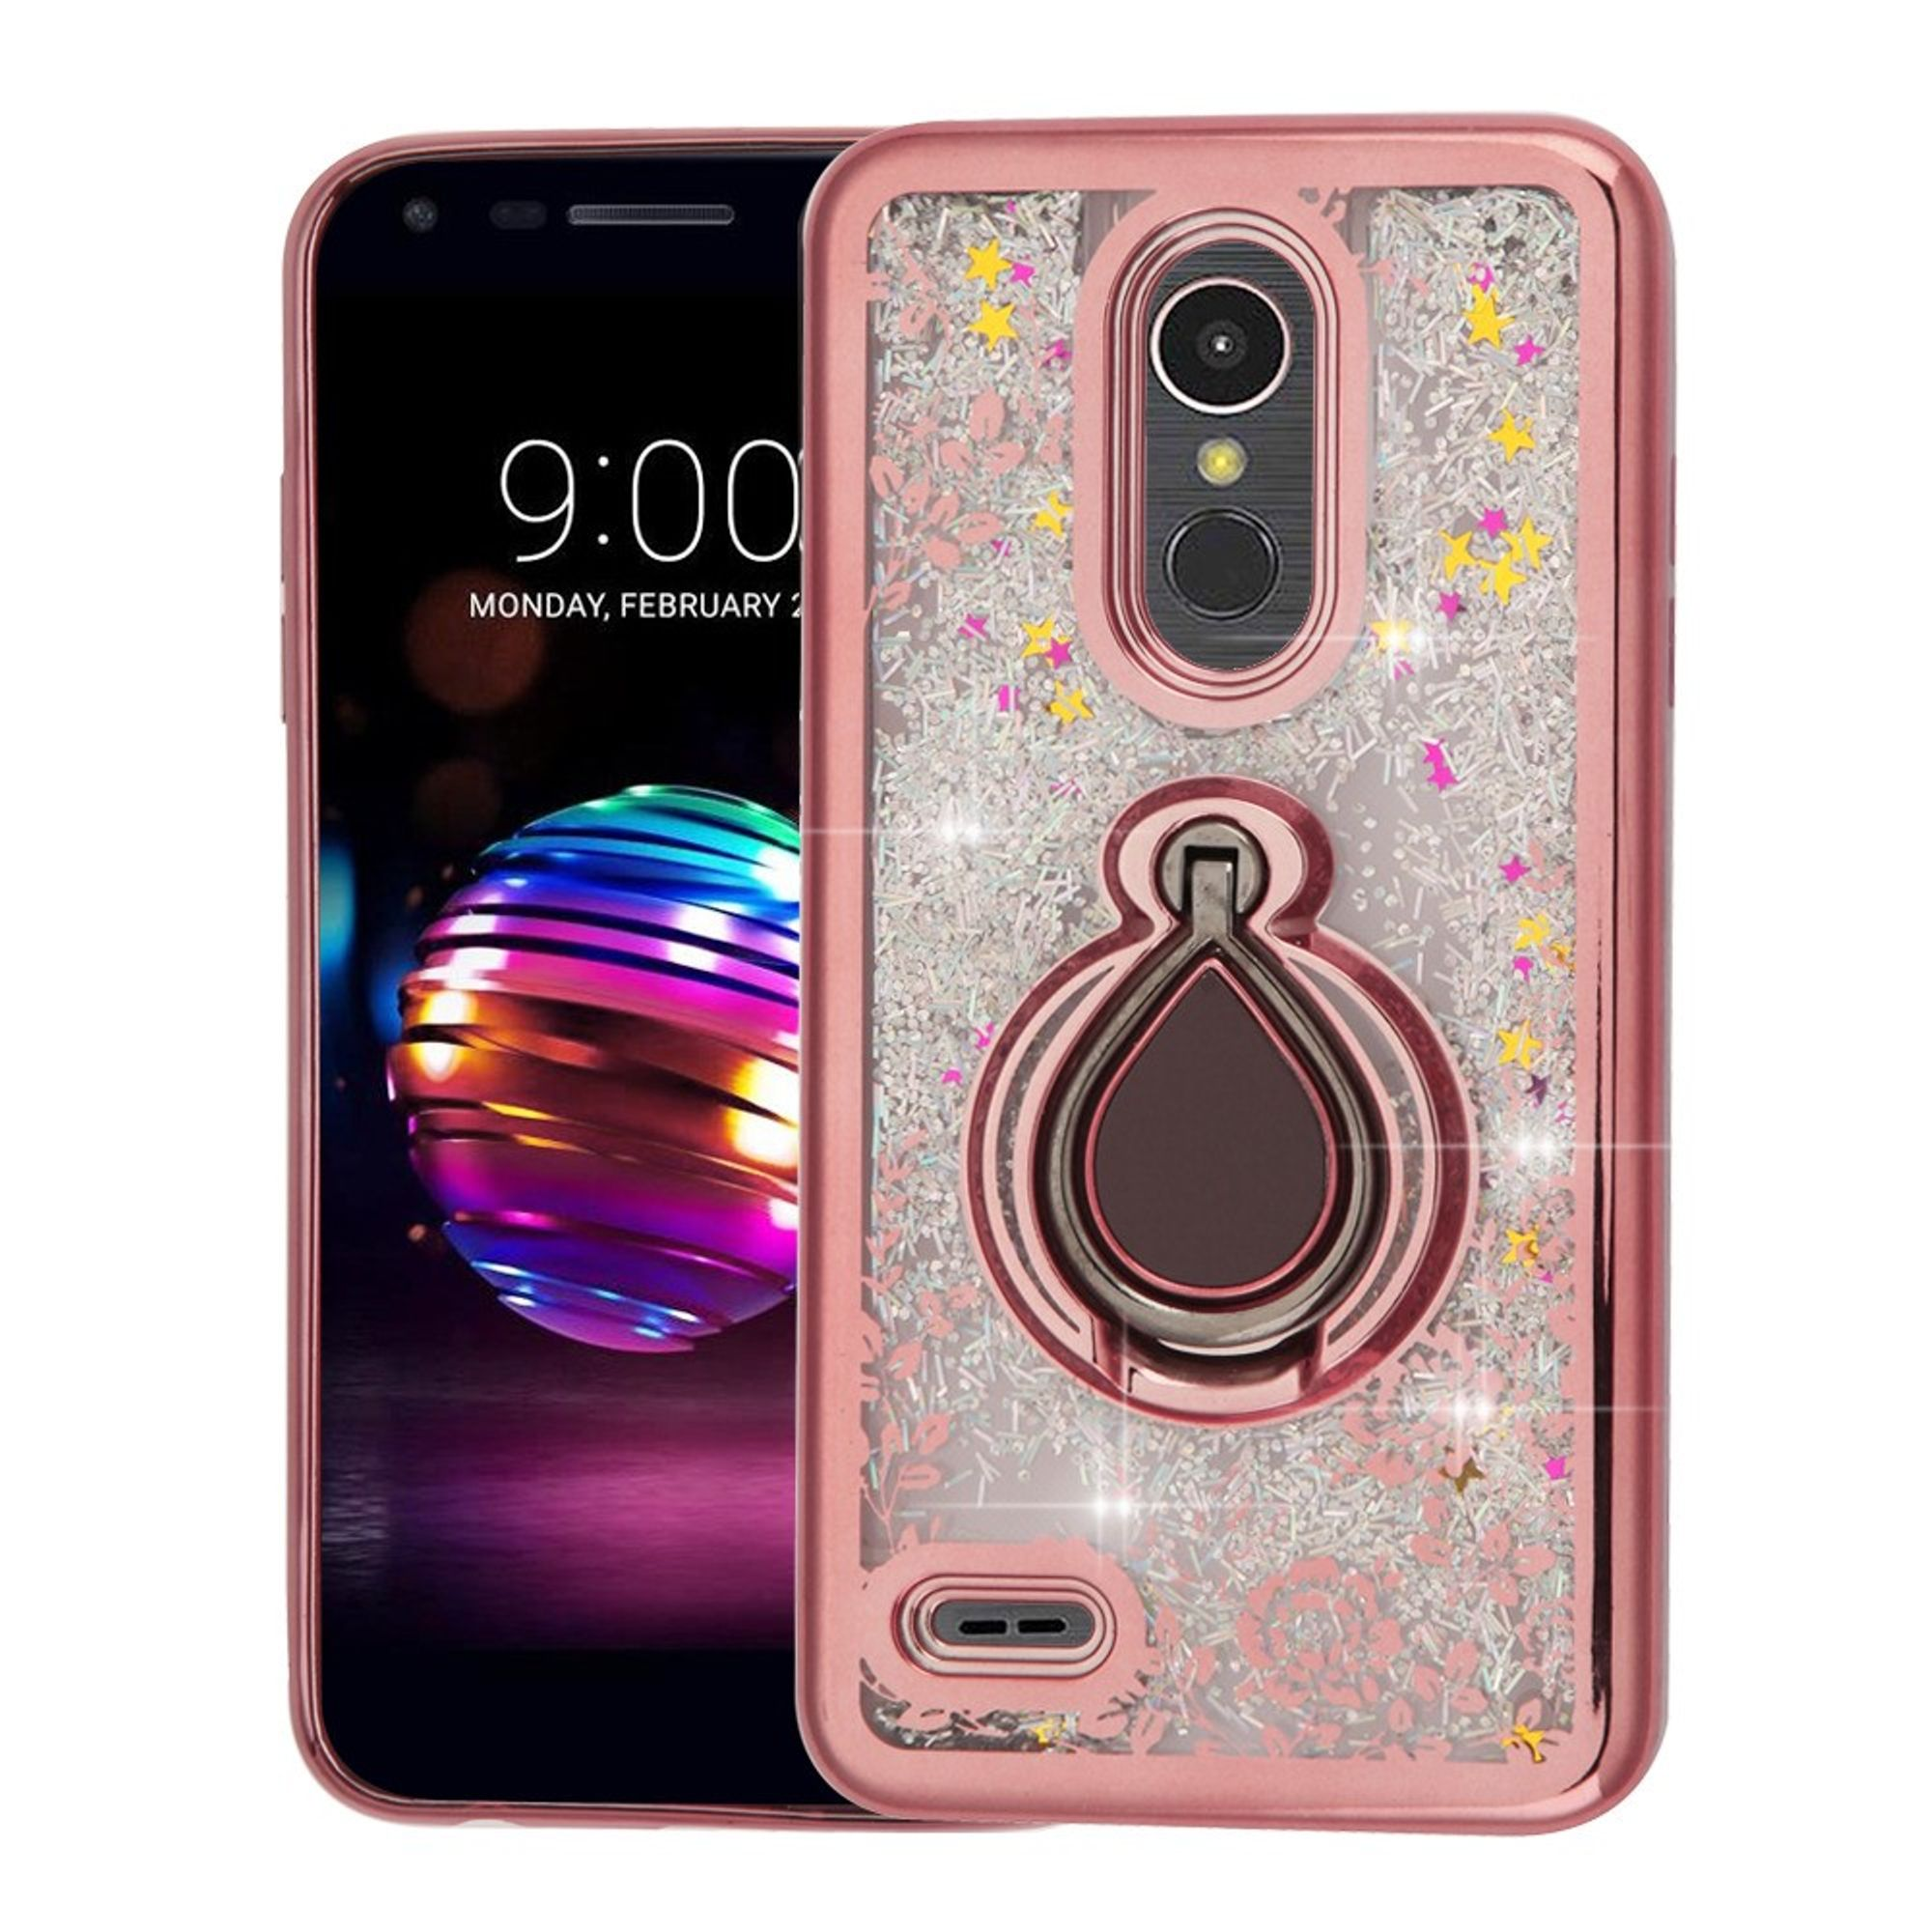 LG K30 case by Insten Luxury Quicksand Glitter Liquid Floating Sparkle Bling Fashion Phone Case Cover for LG K30